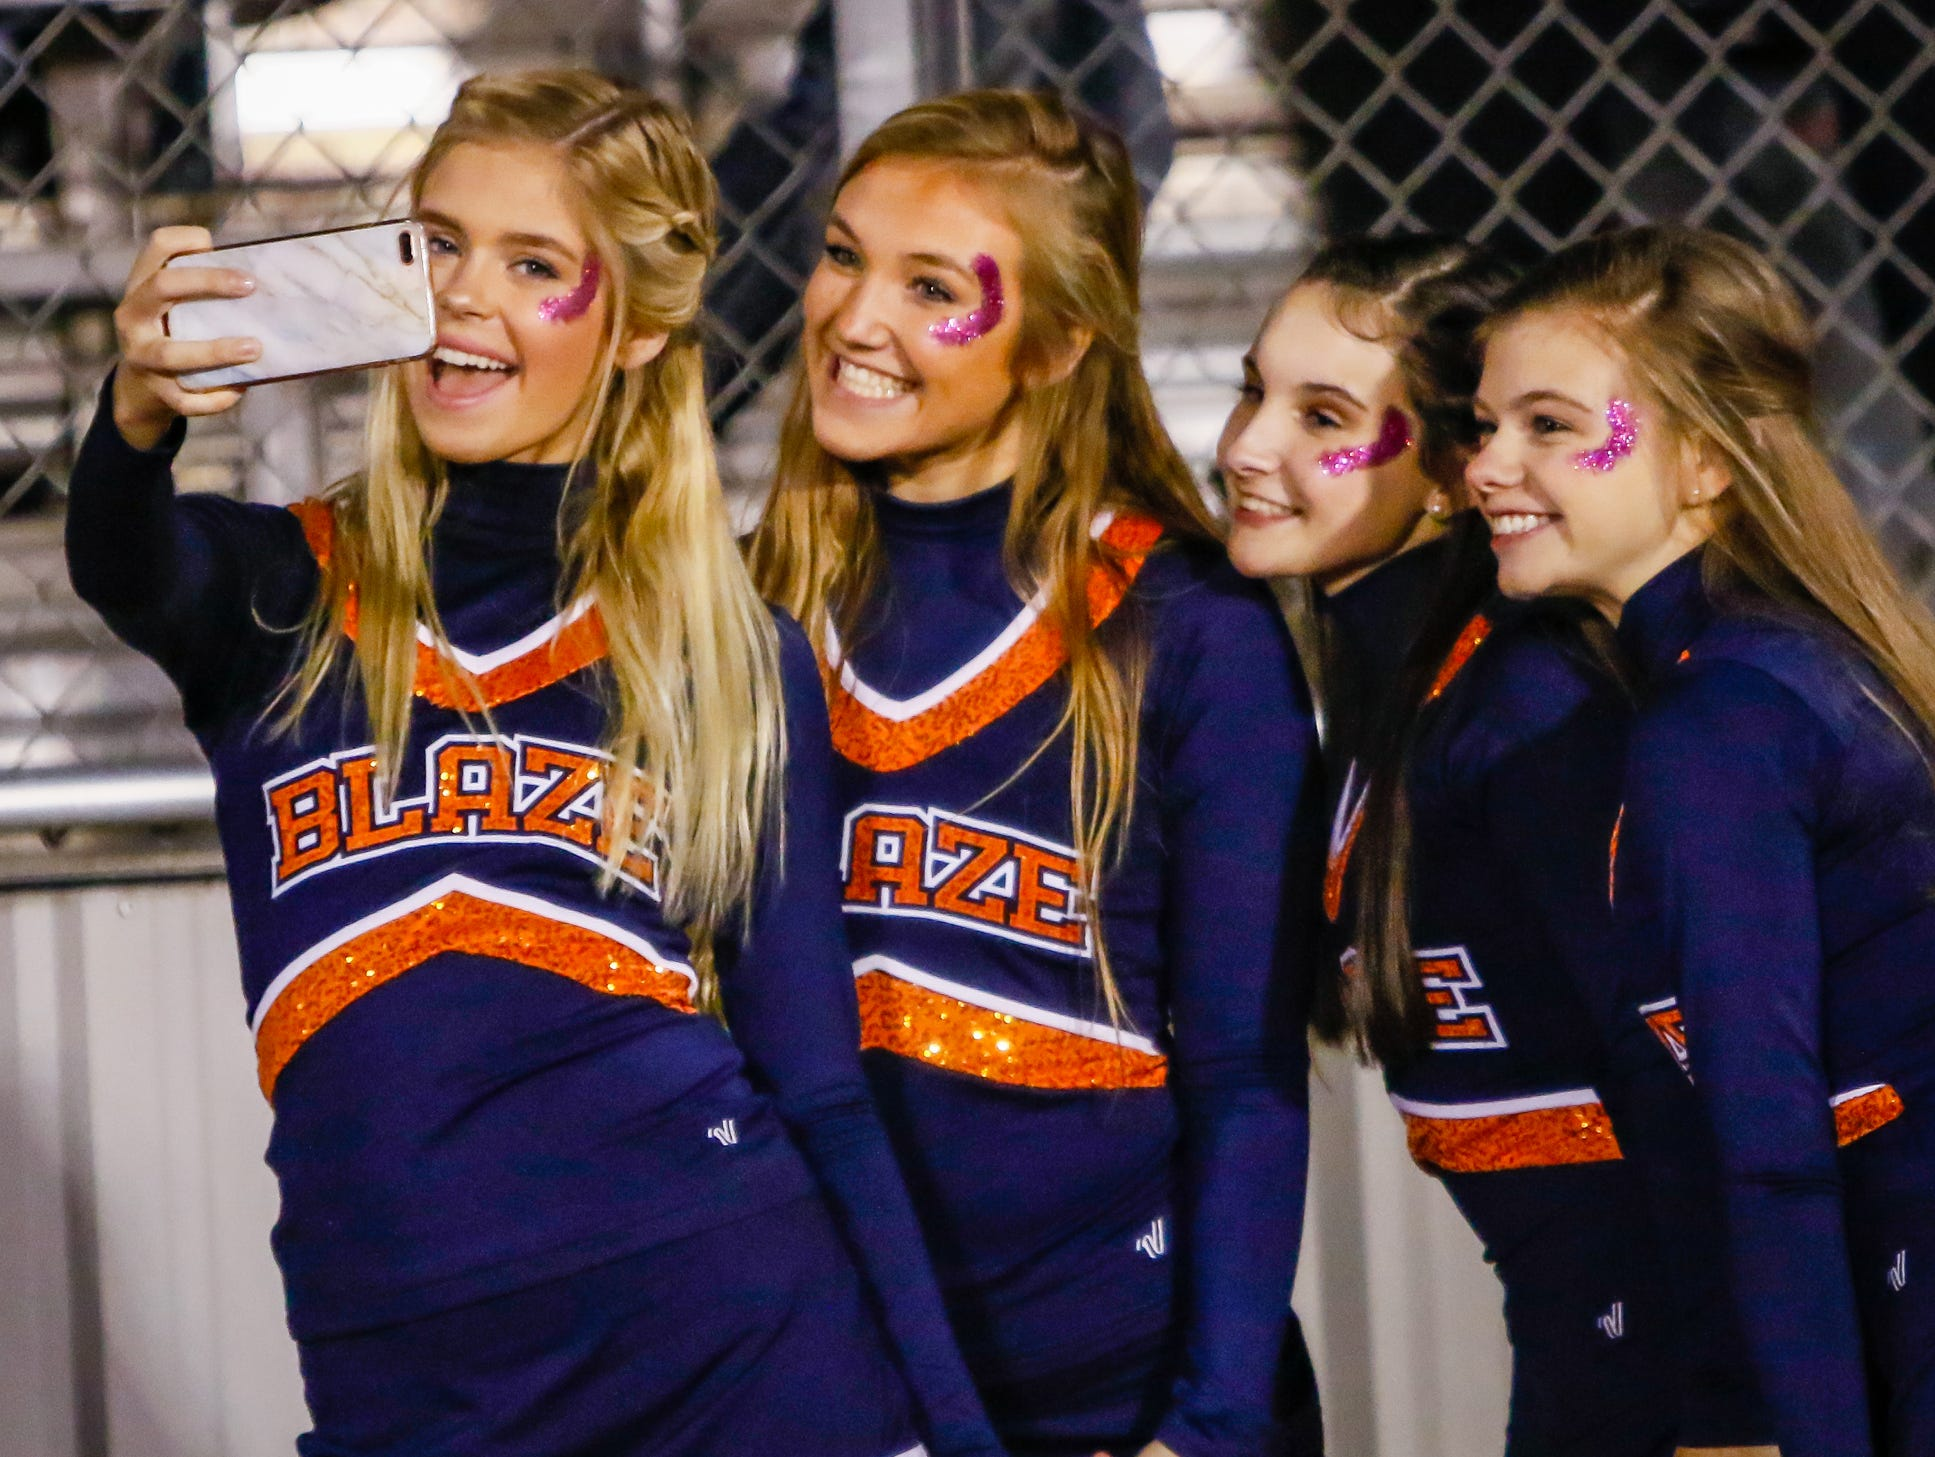 Blackman cheerleaders take time for a selfie prior to kickoff.